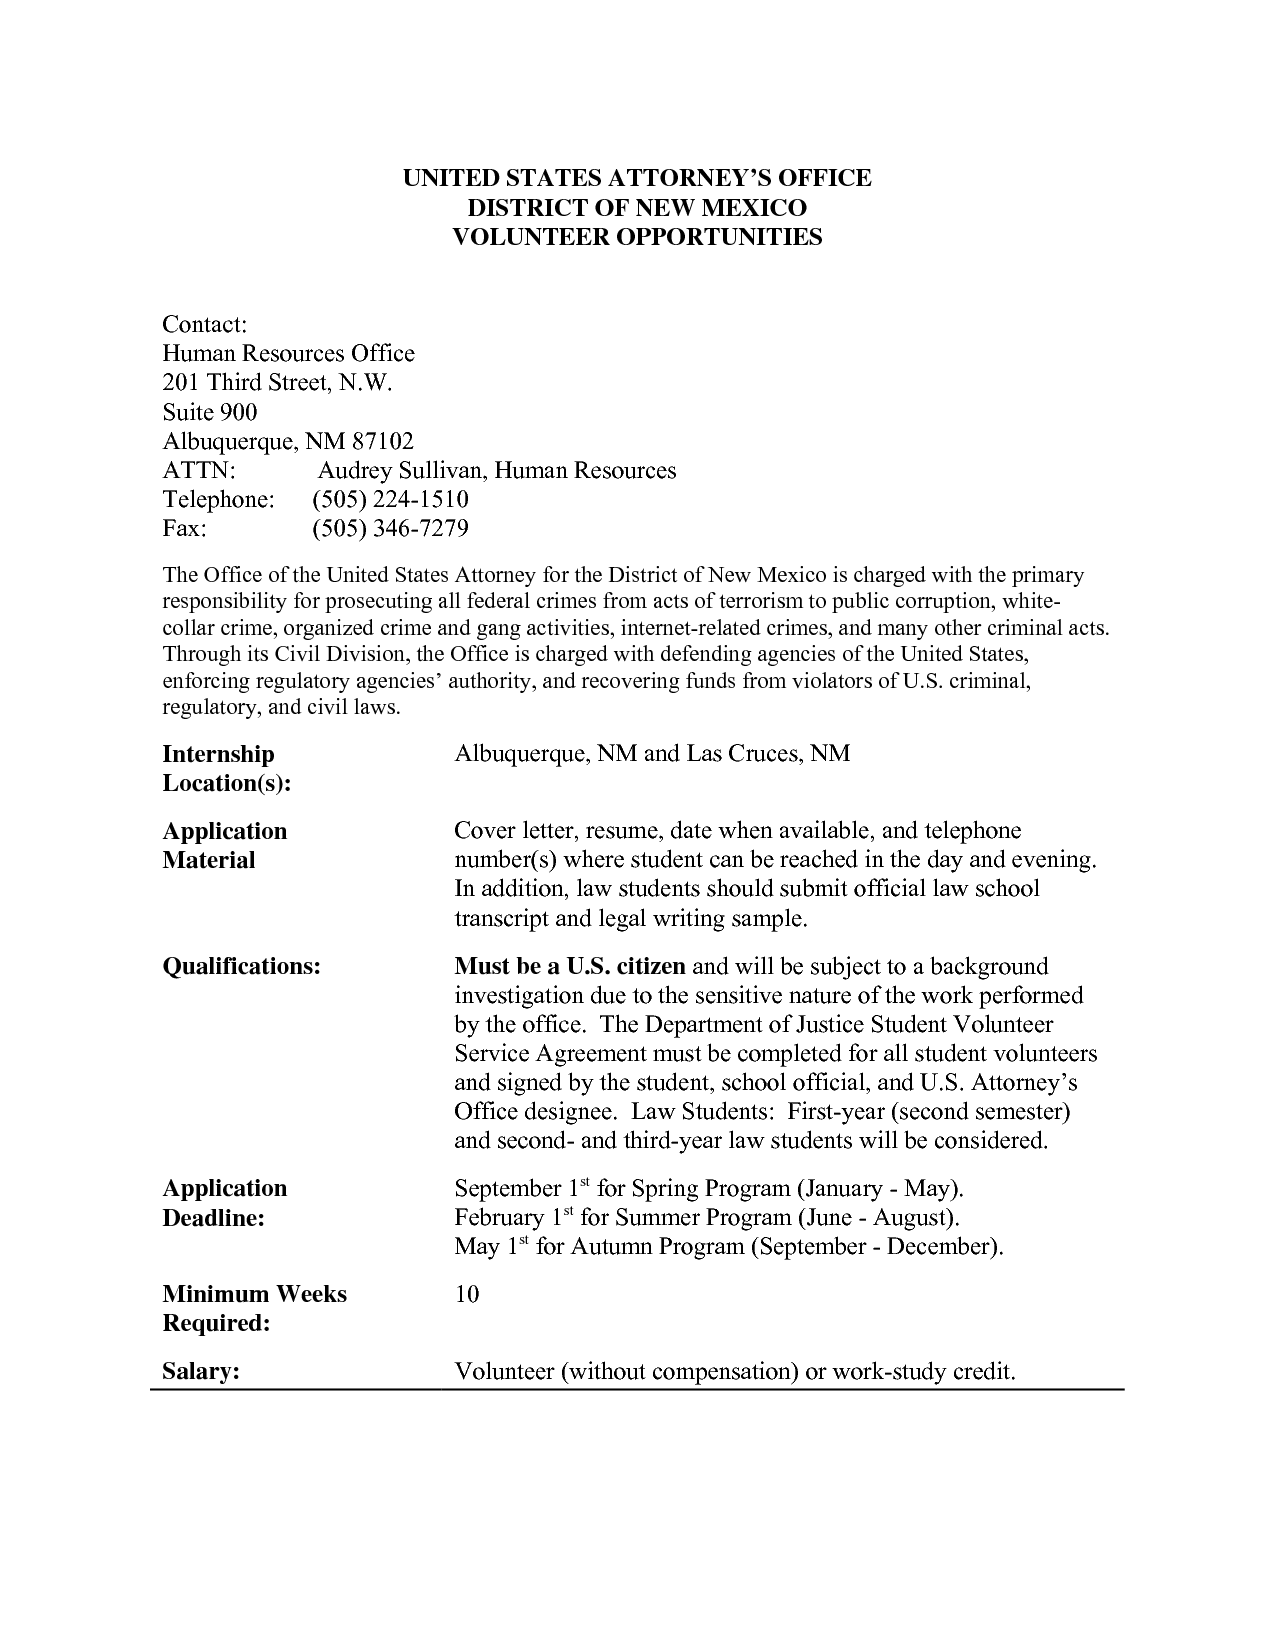 Volunteer Work On Resumevolunteer Work On Resume Application Letter